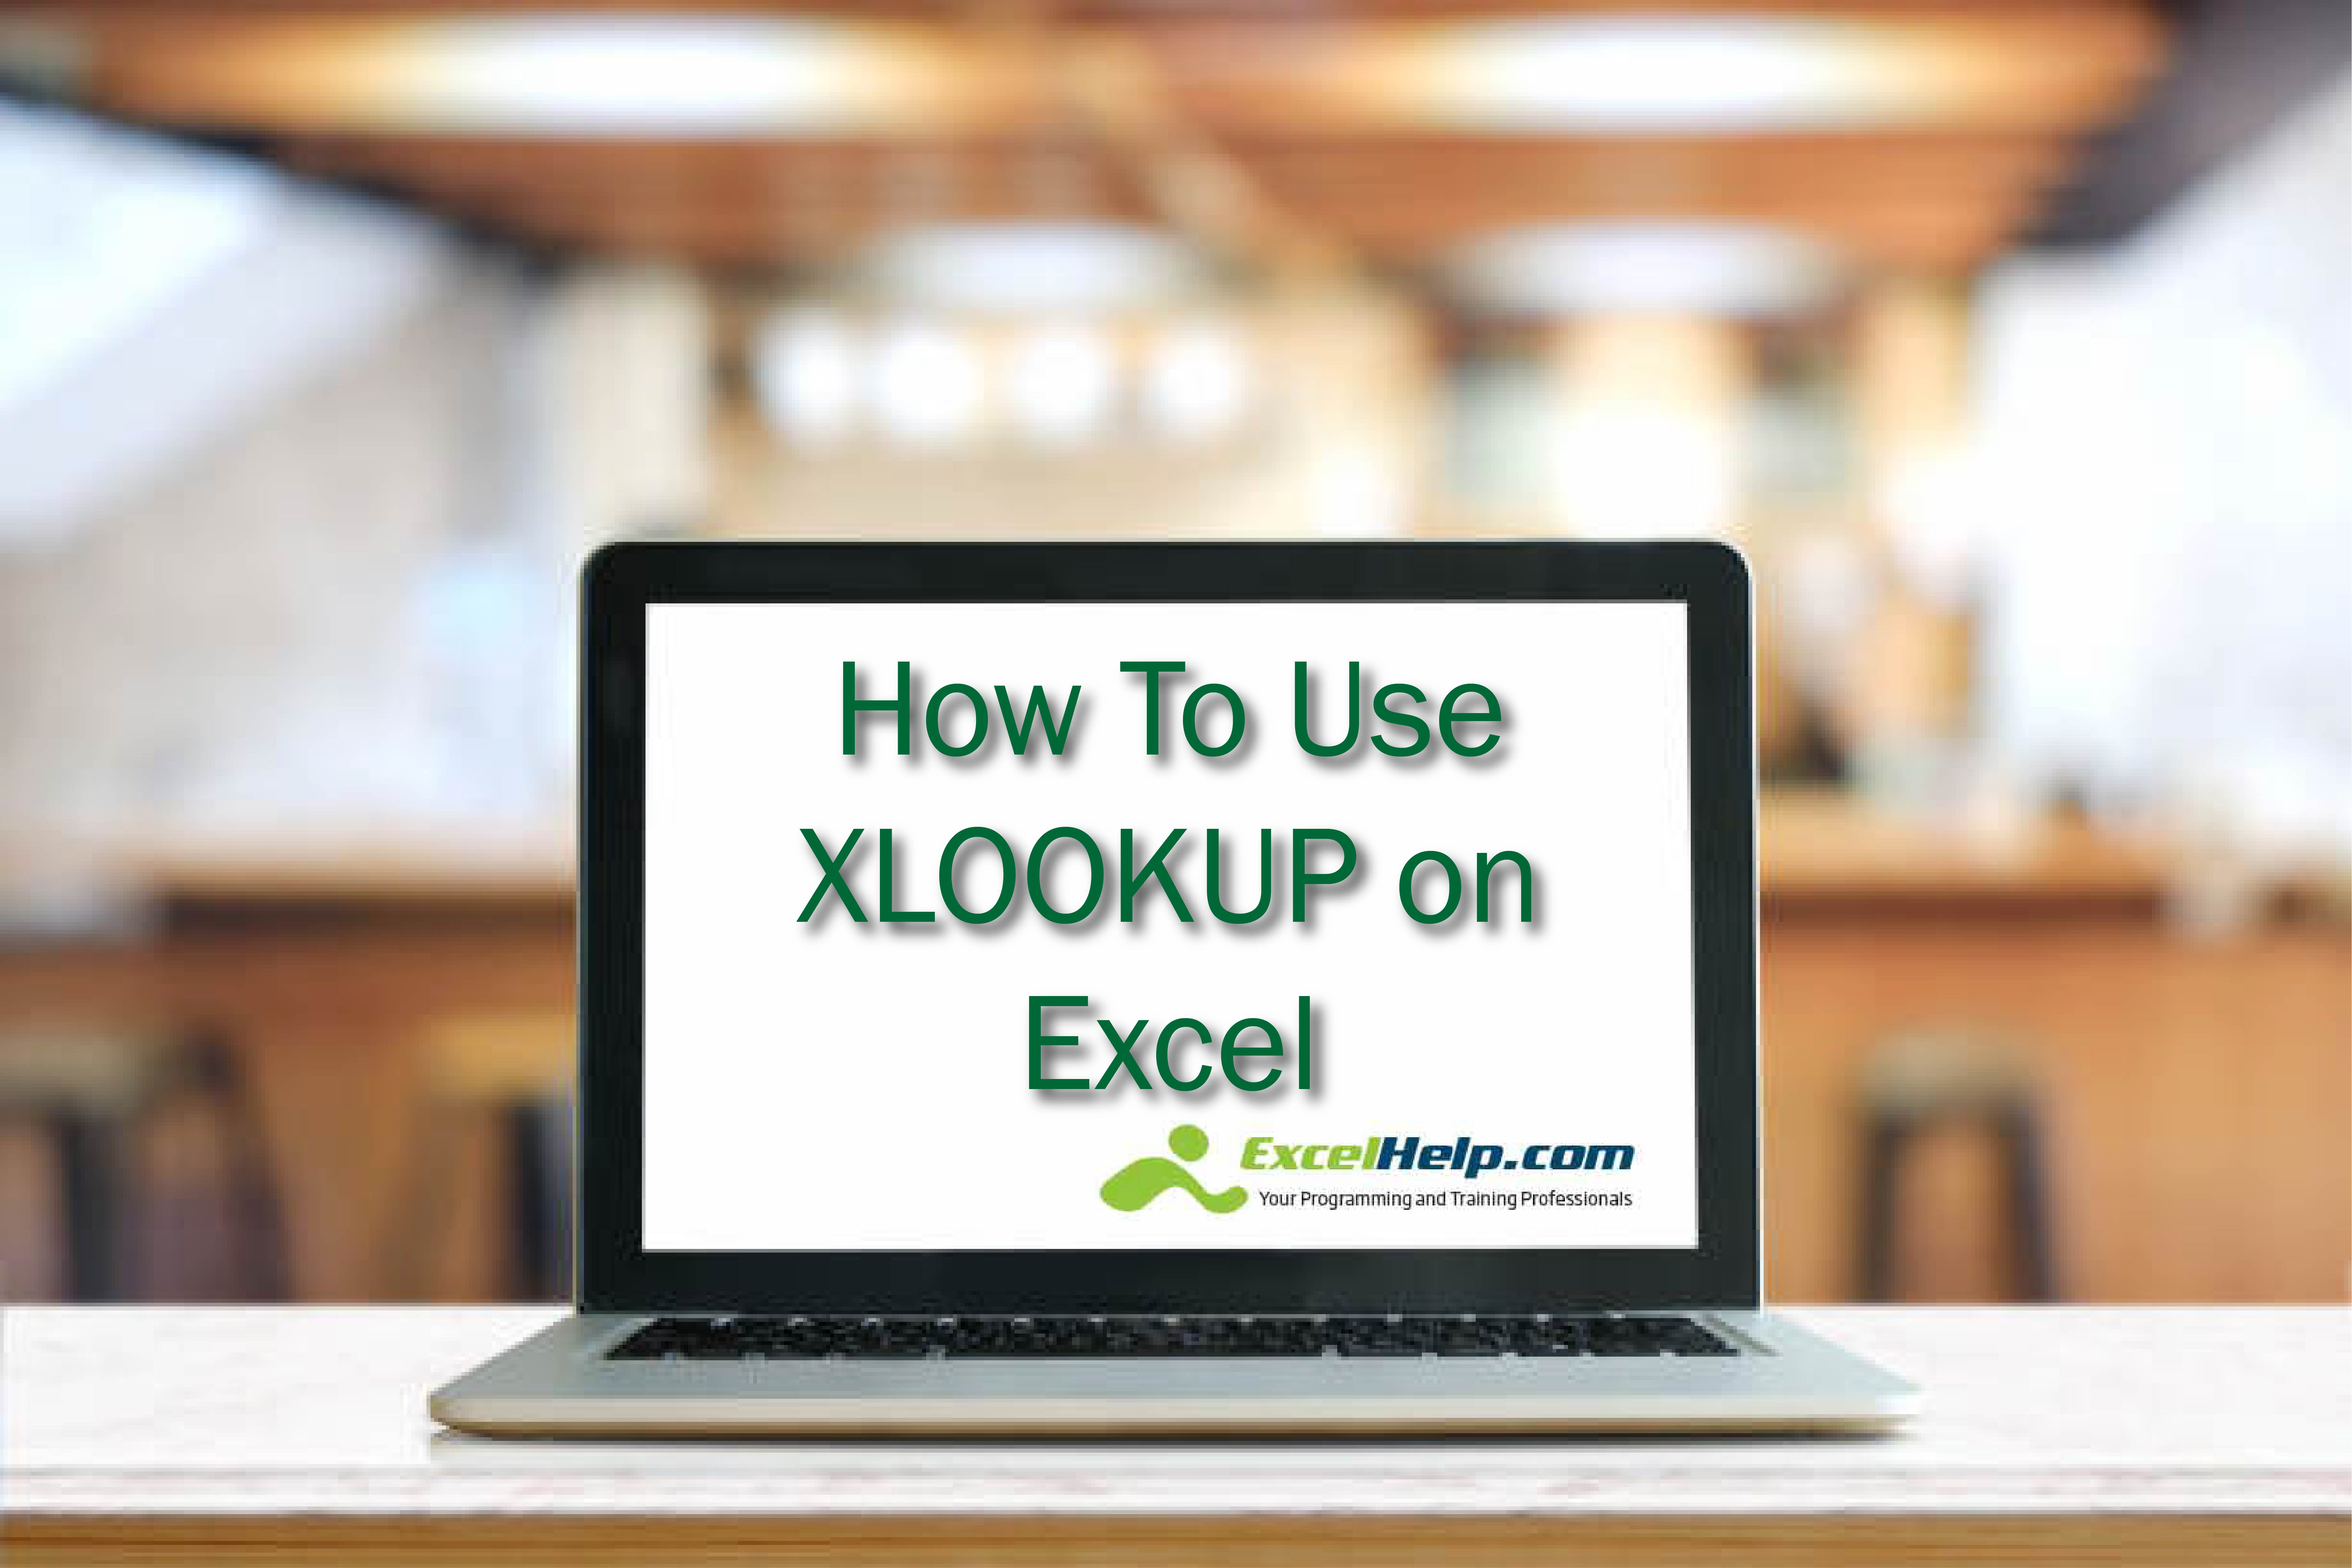 How To Use Xlookup On Excel